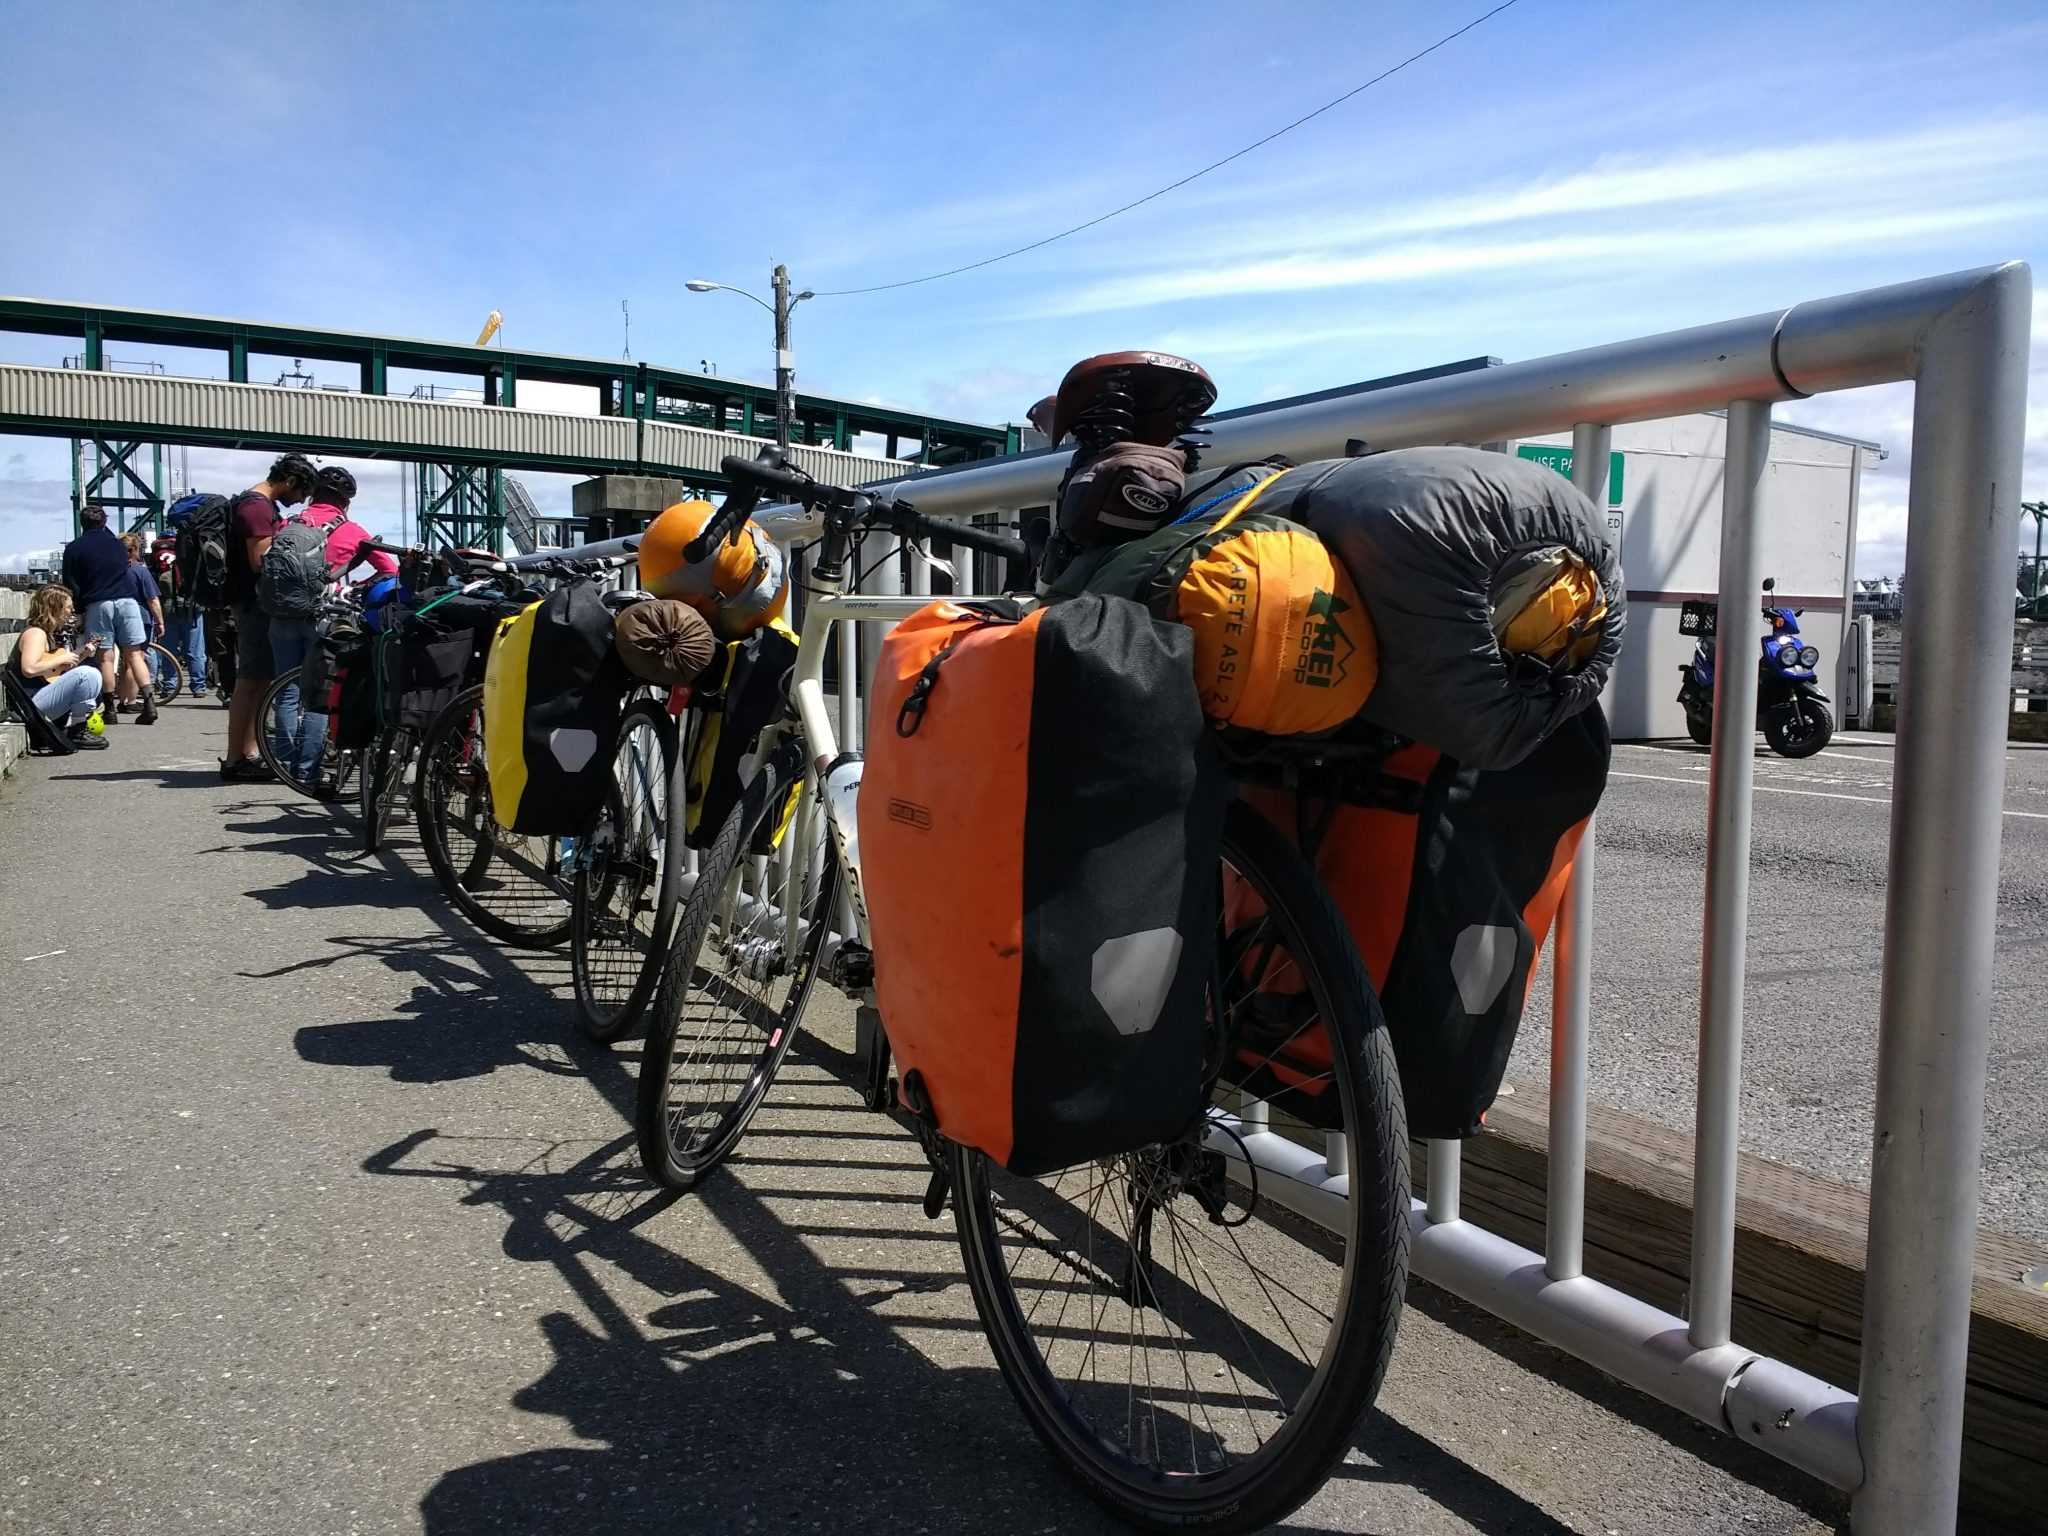 A group of bikes loaded with colorful camping gear next to a metal barrier on a dock, getting ready for Lopez Island bike camping